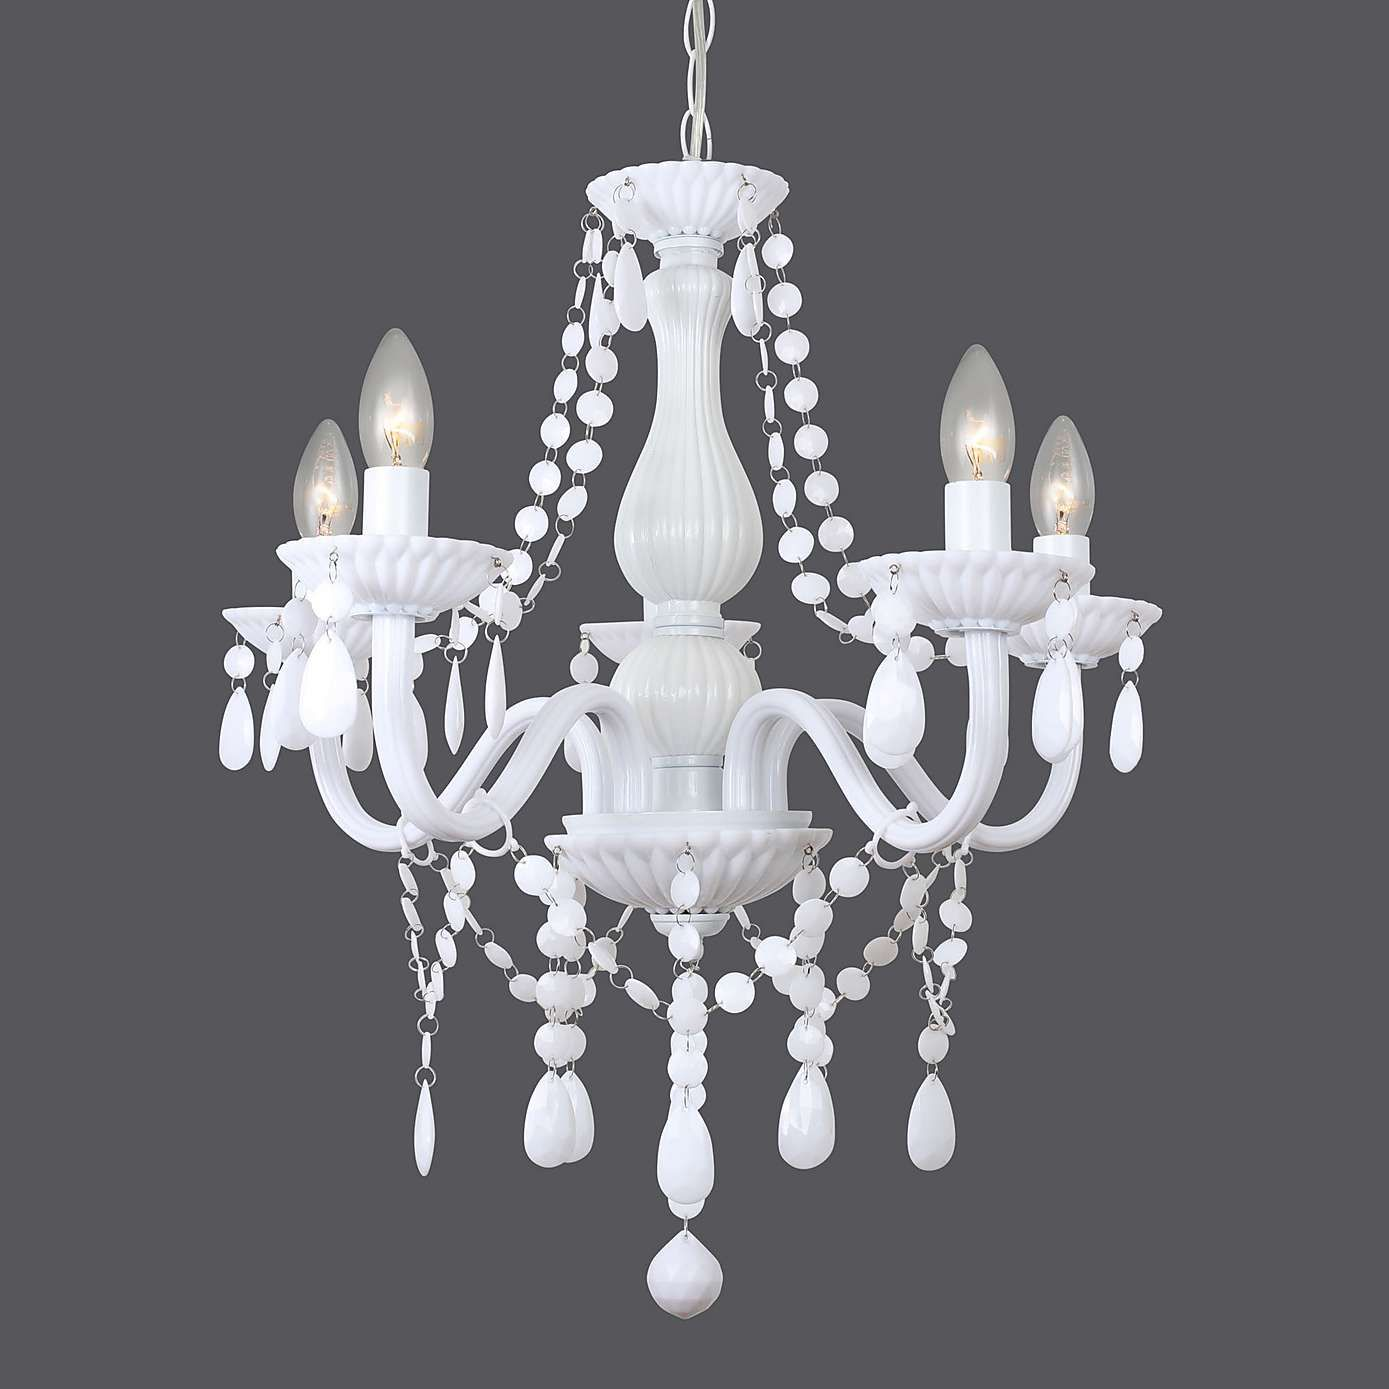 Maisie 5 light glass chandelier dunelm lucys bedroom bedrooms arubaitofo Gallery